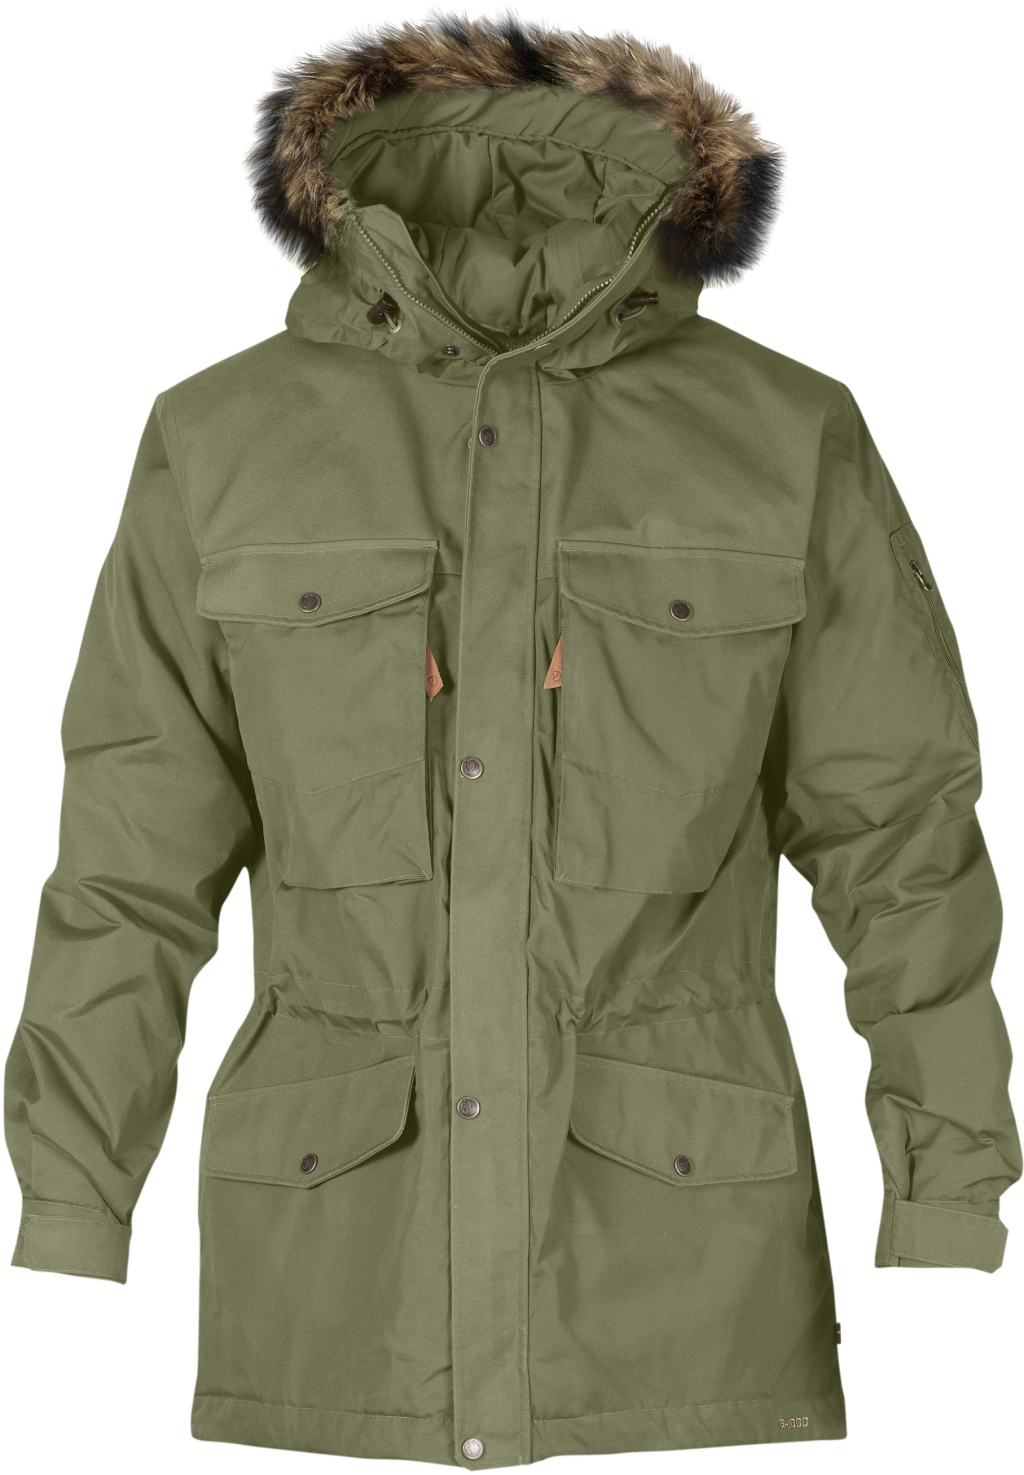 FjallRaven Singi Winter Jacket Green-30